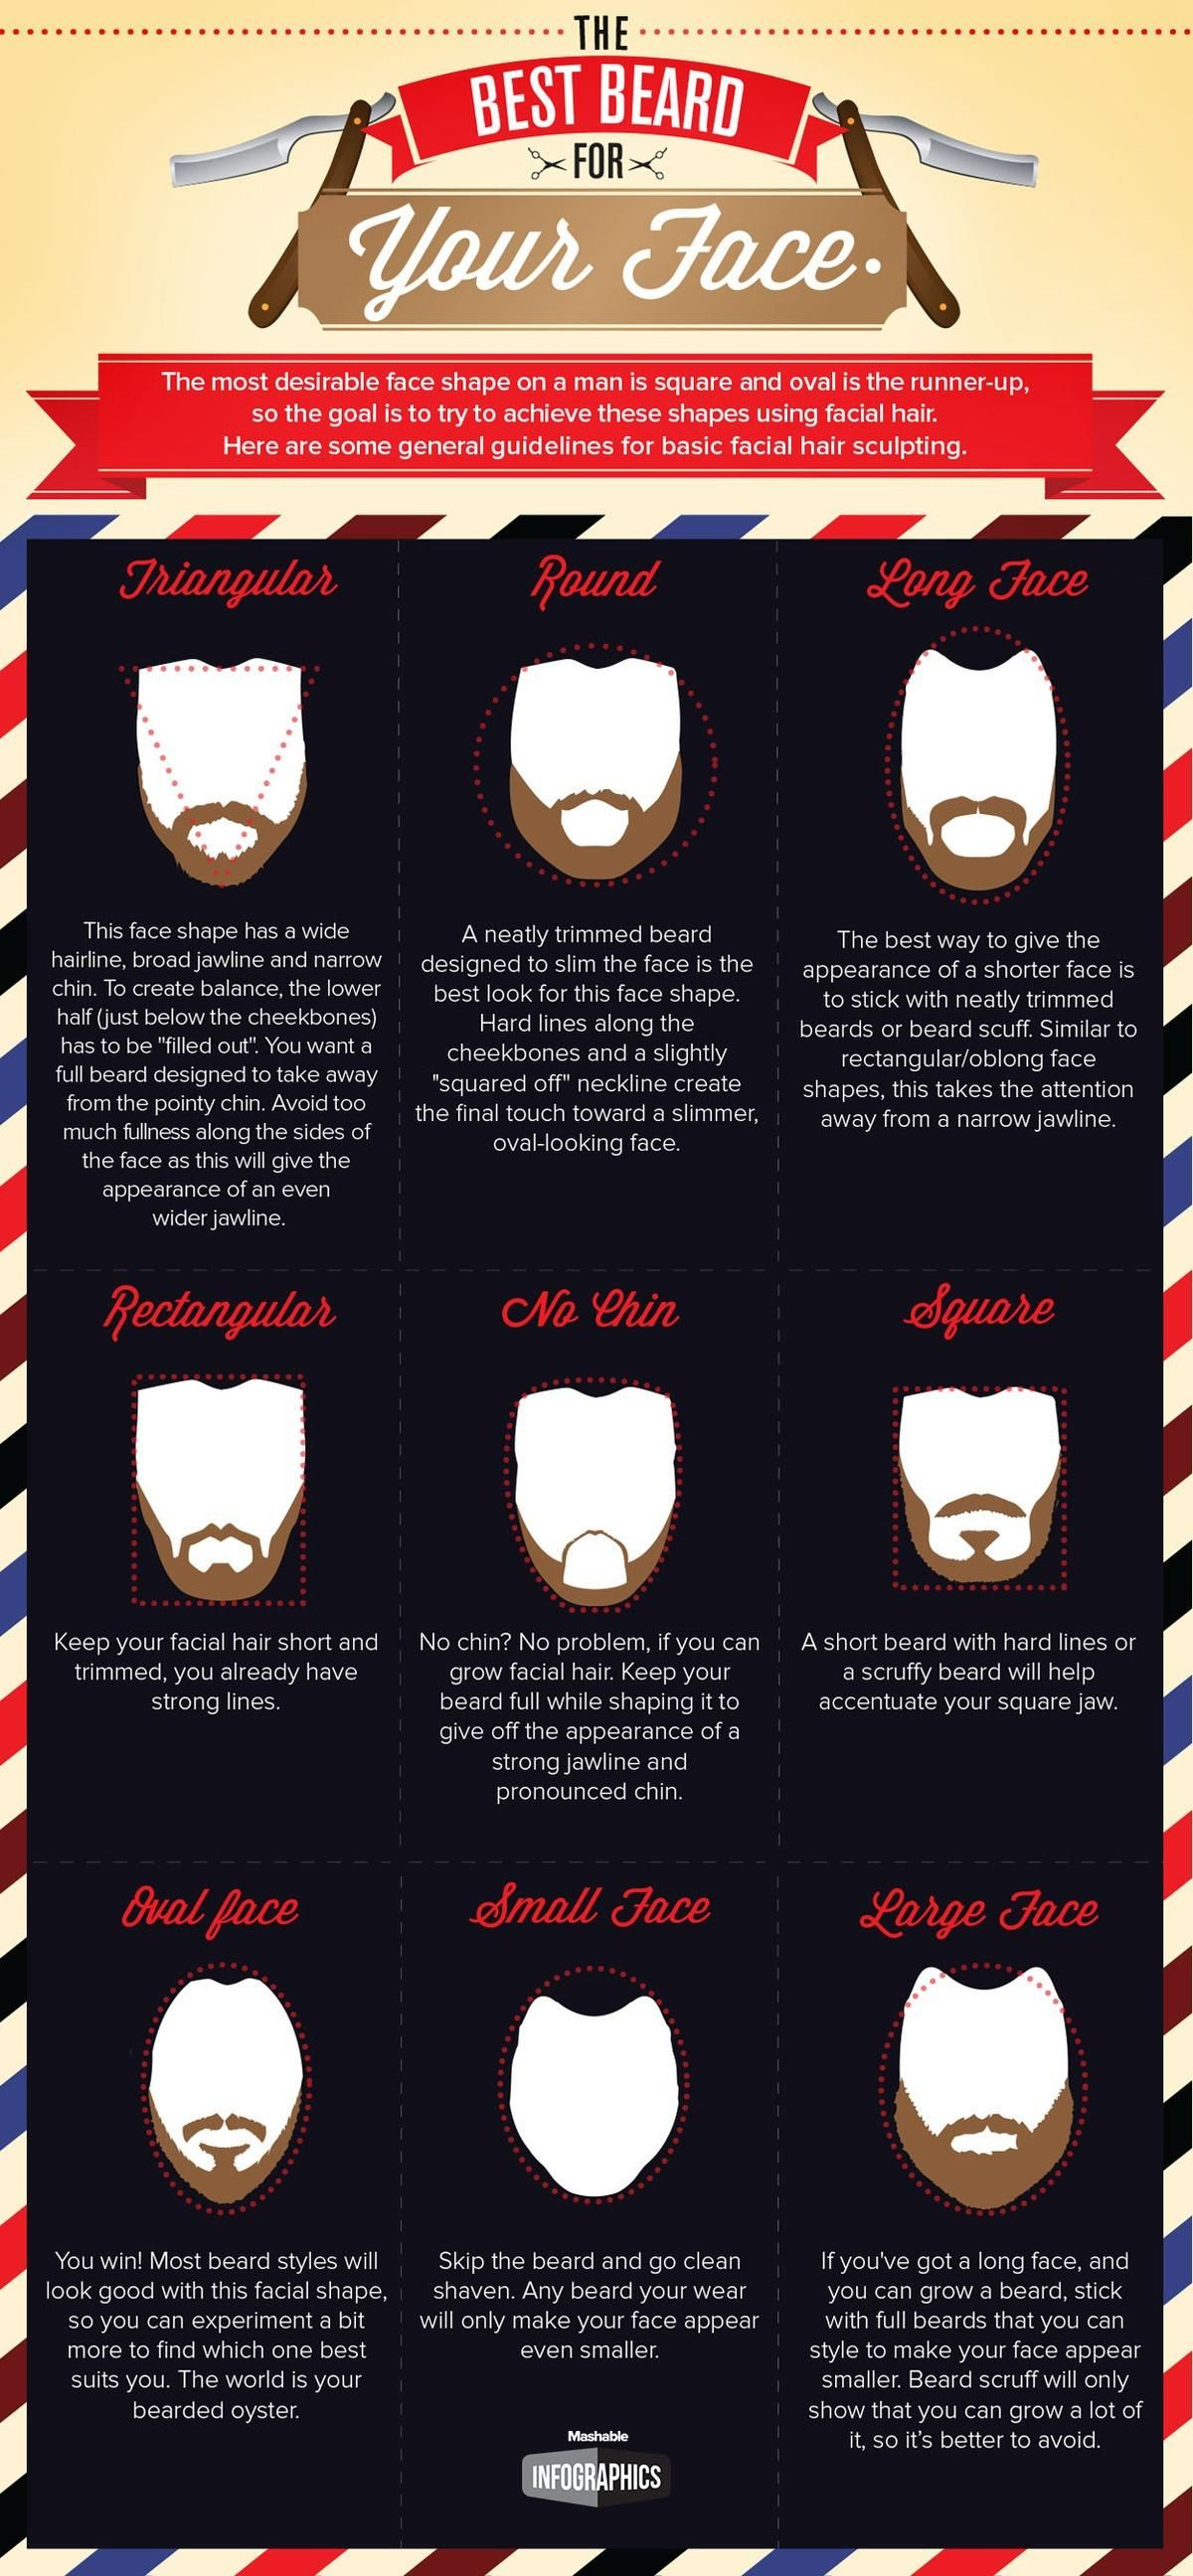 the best type of beard for your face | infographics | best